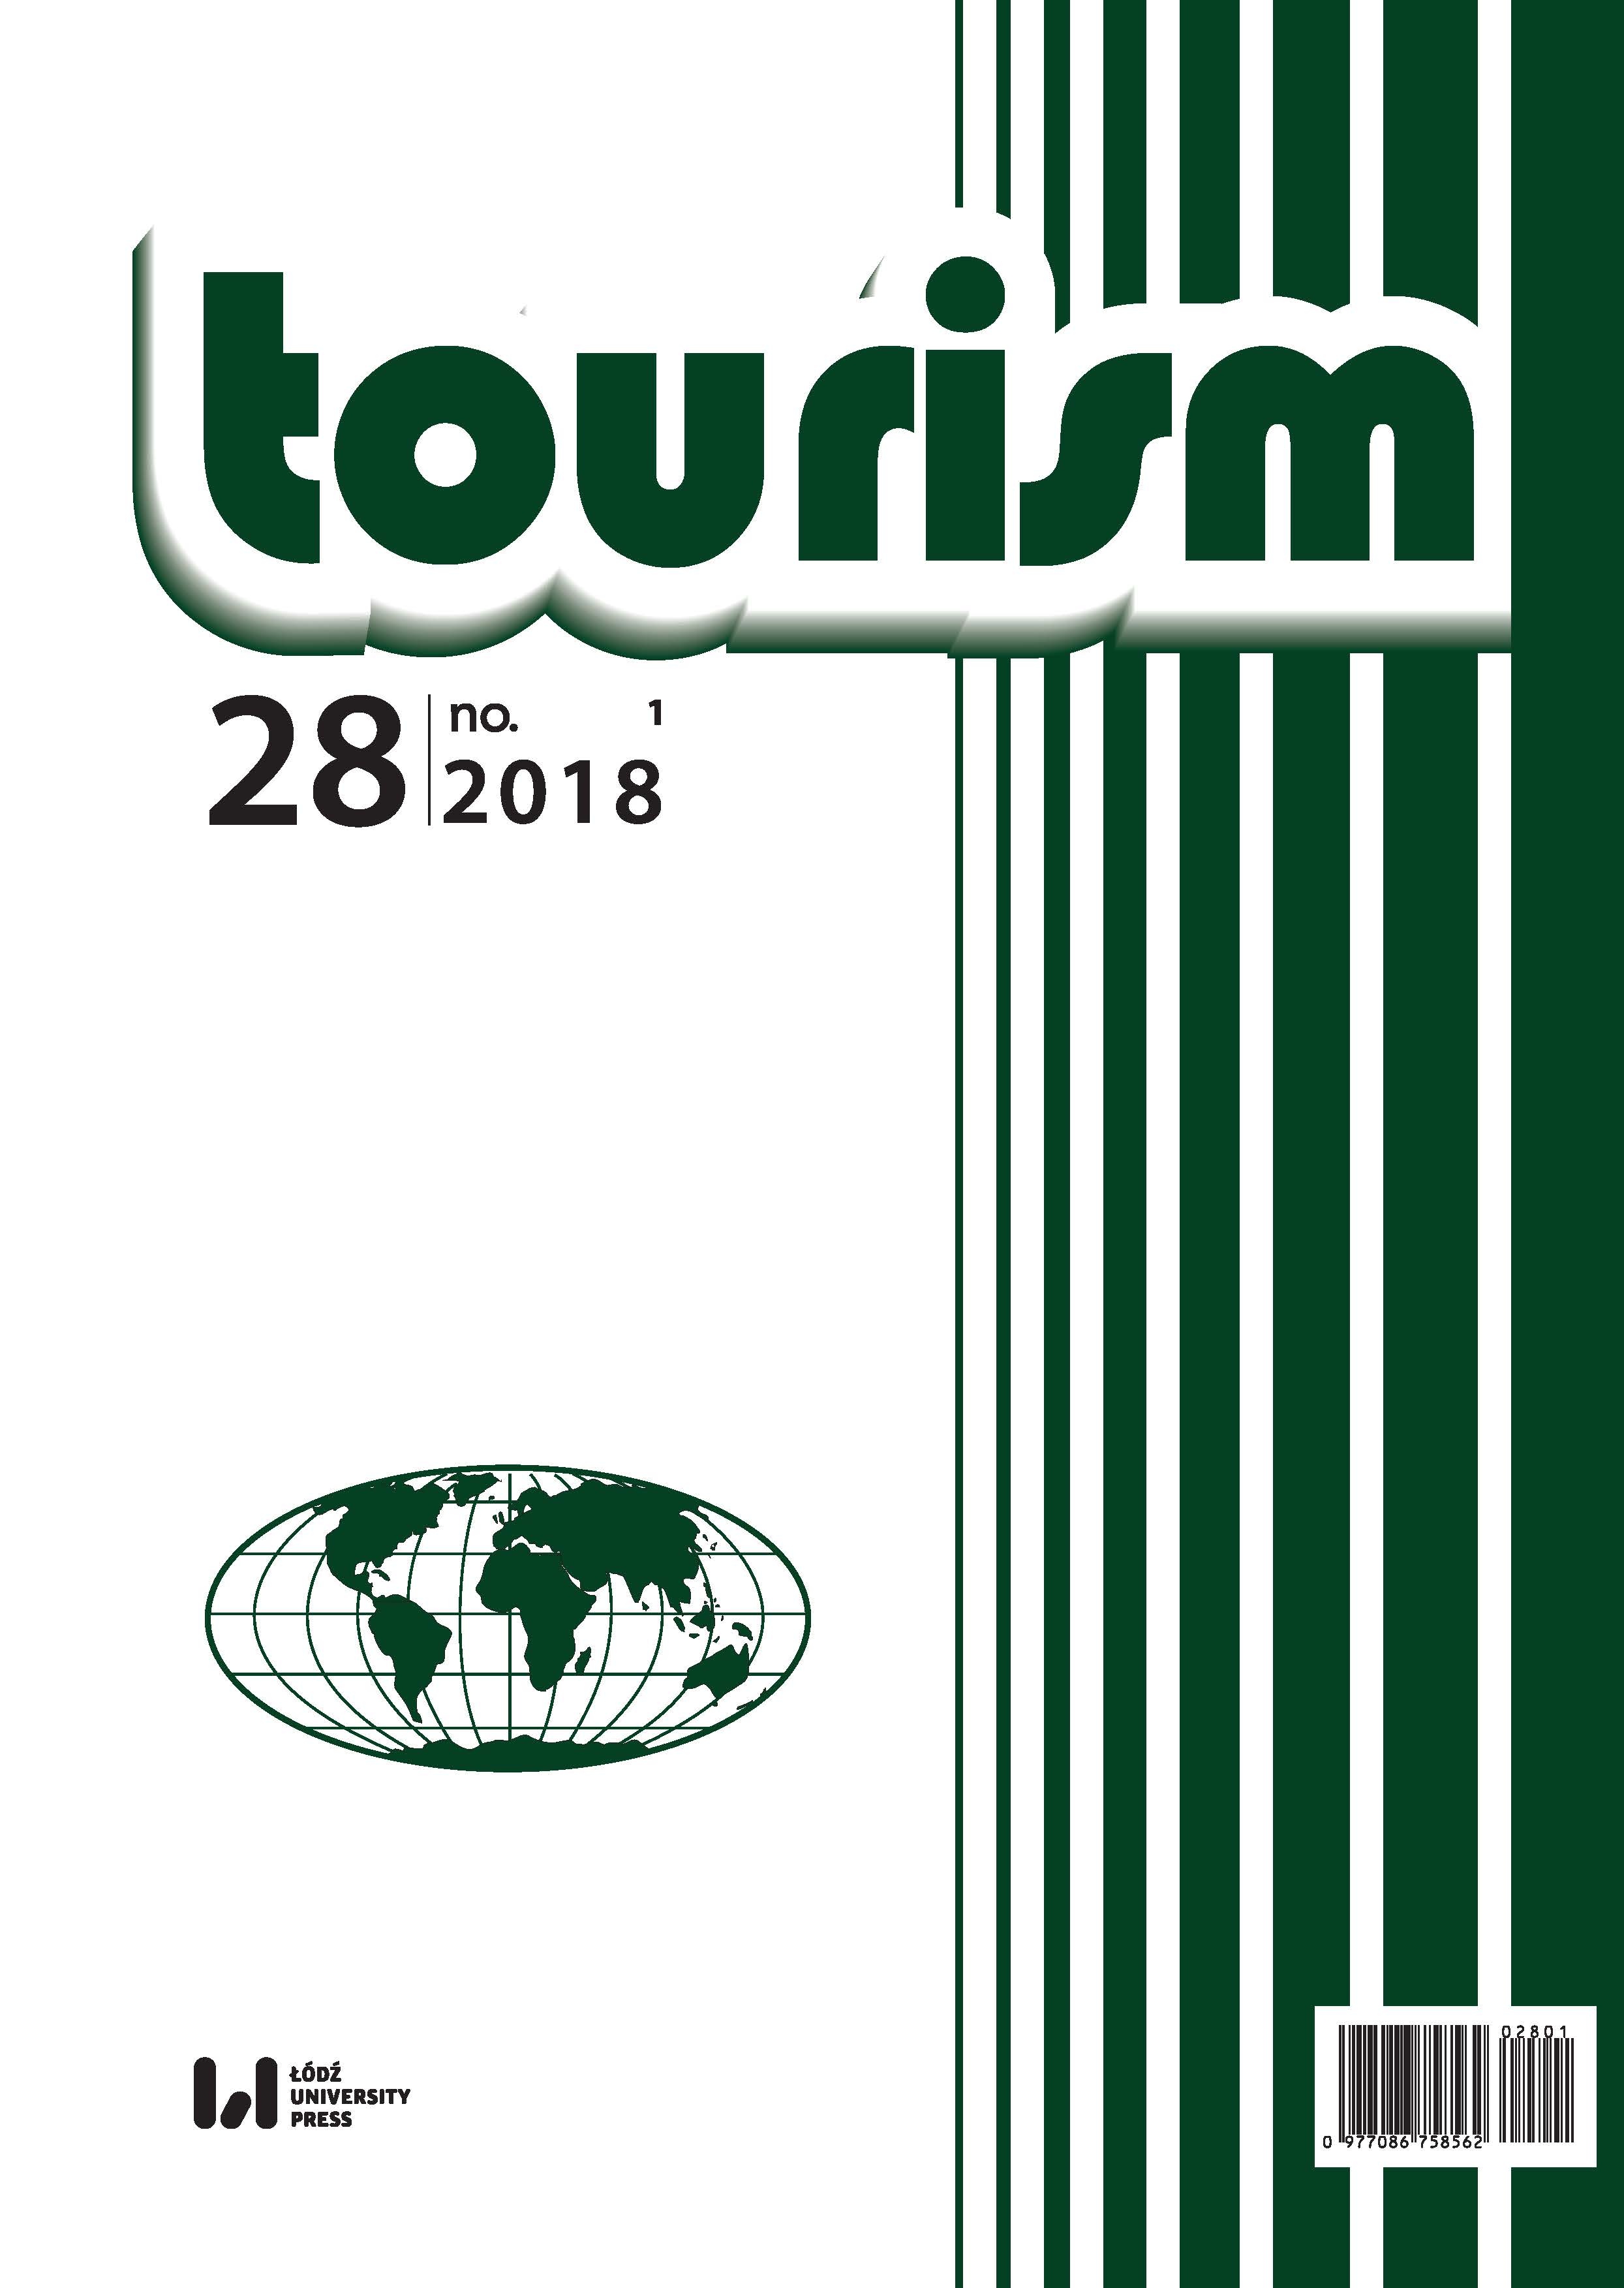 A METHODOLOGY FOR CALCULATING INDIVIDUAL INDICATORS OF TOURISM ACTIVITY